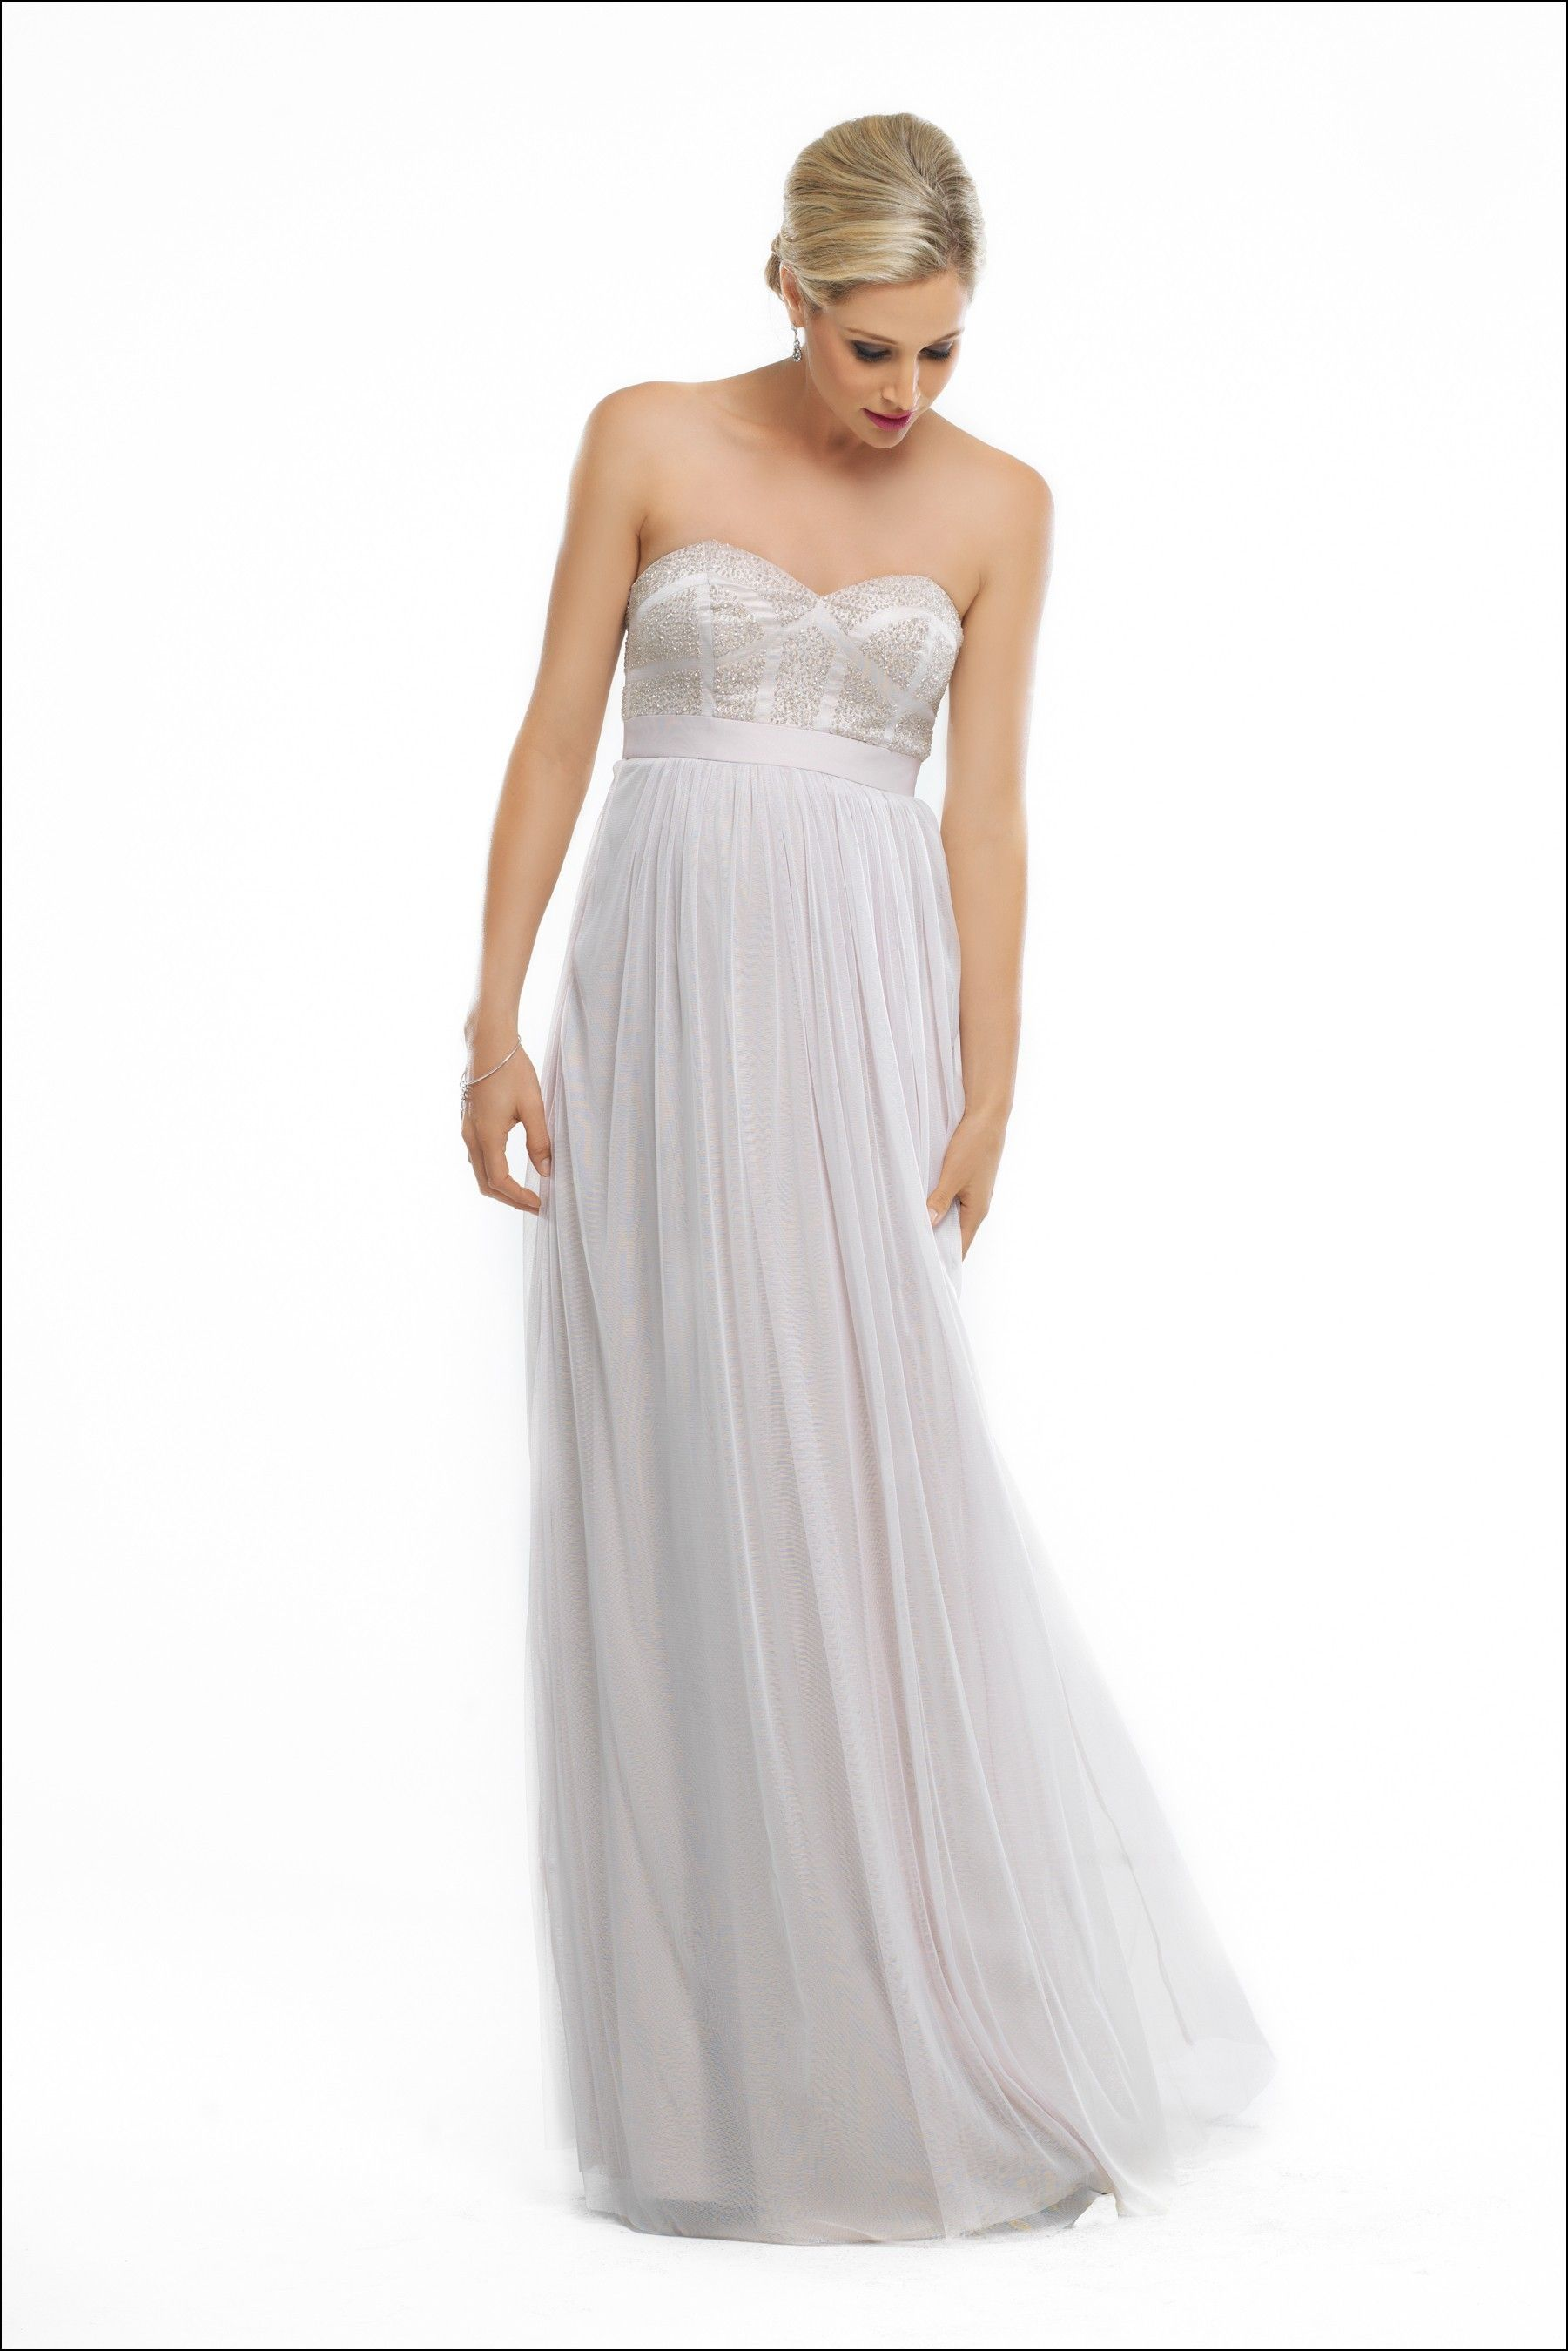 George bridesmaid dresses dresses and gowns ideas pinterest